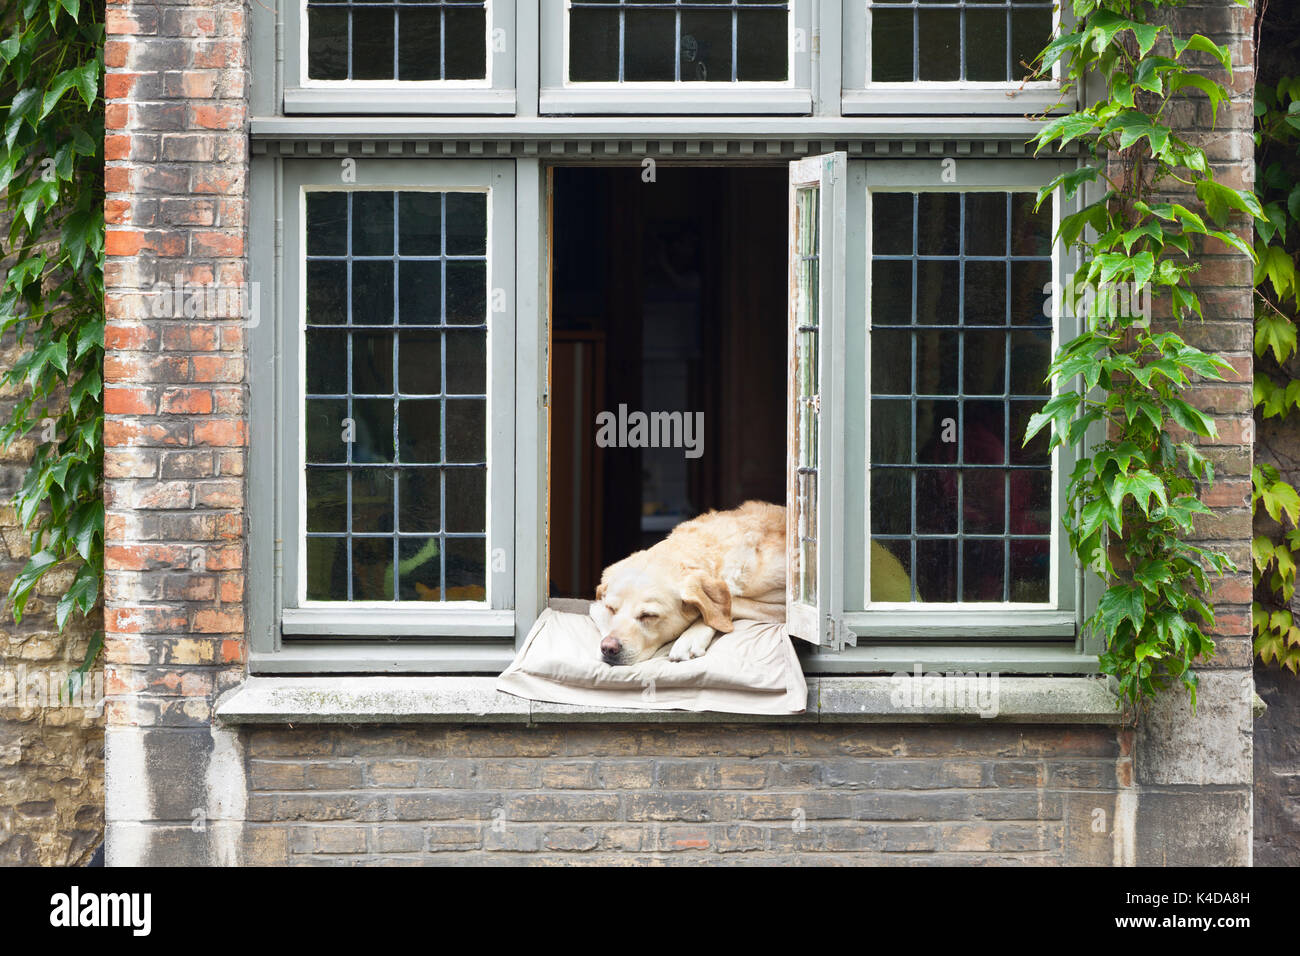 A dog relaxing on a pillow in a window at a canalside house in Bruges, Belgium. - Stock Image